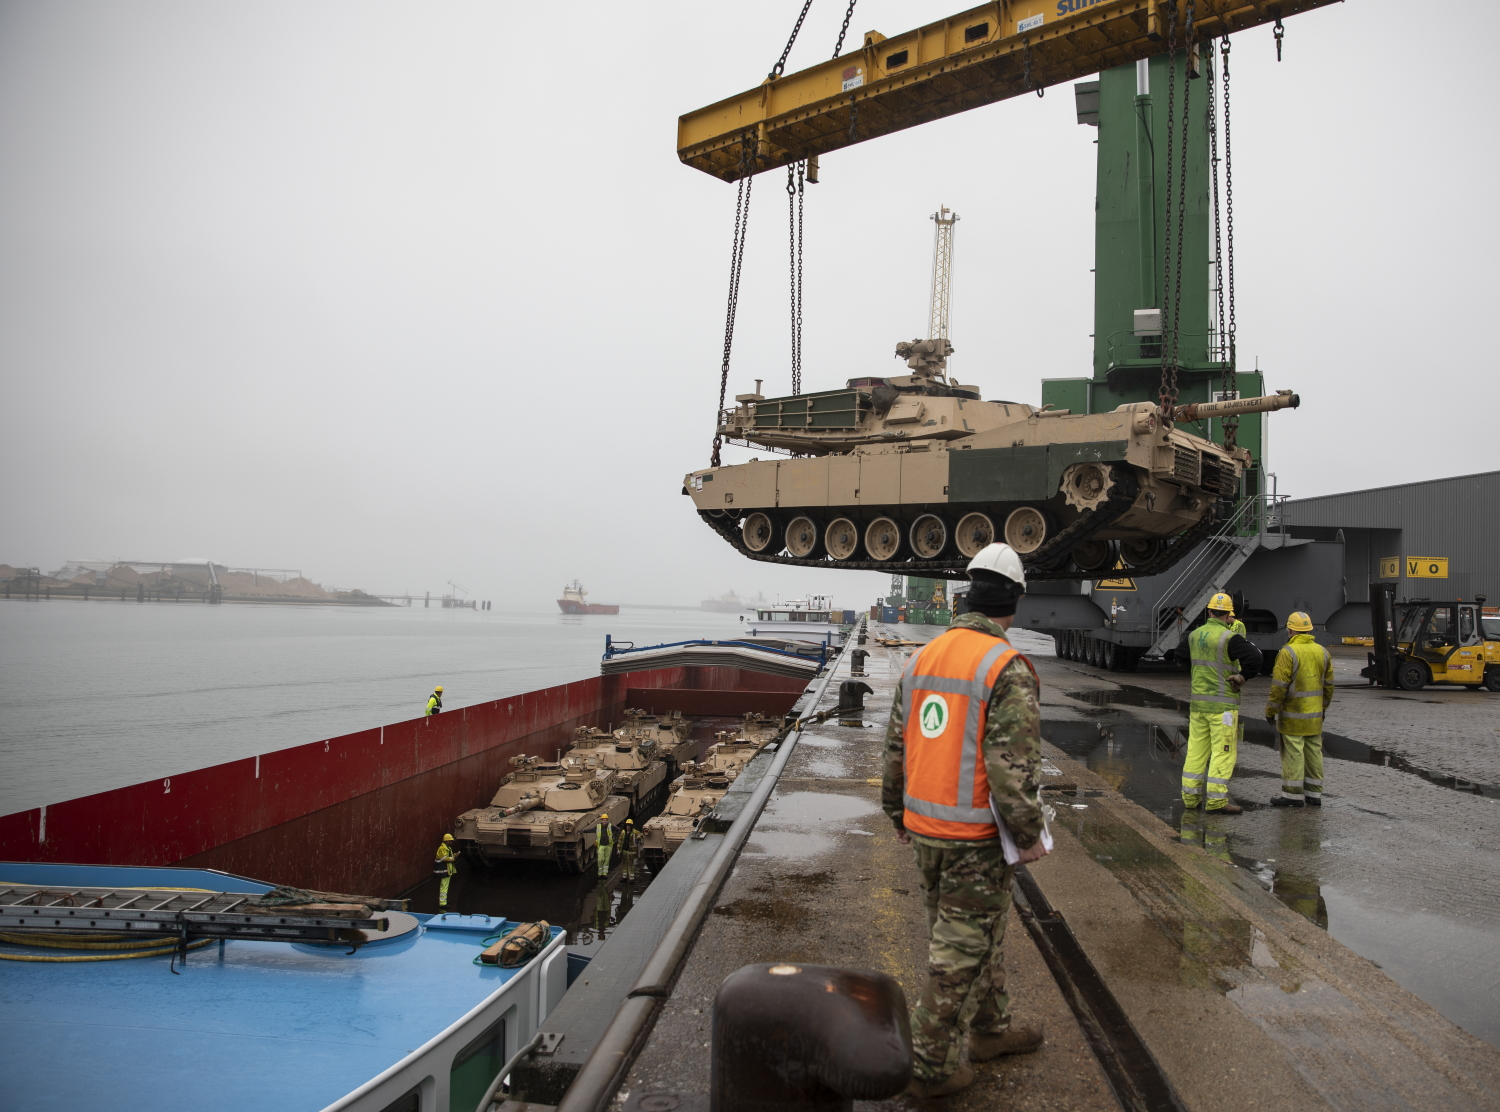 Army Reserve Cpl. Dustin Jobe supervises as an M1A2 Abram Tank is raised over the pier ledge at the Port of Vlissingen, Netherlands, on Oct. 12, 2019. (Sgt. Kyle Larsen/Army)